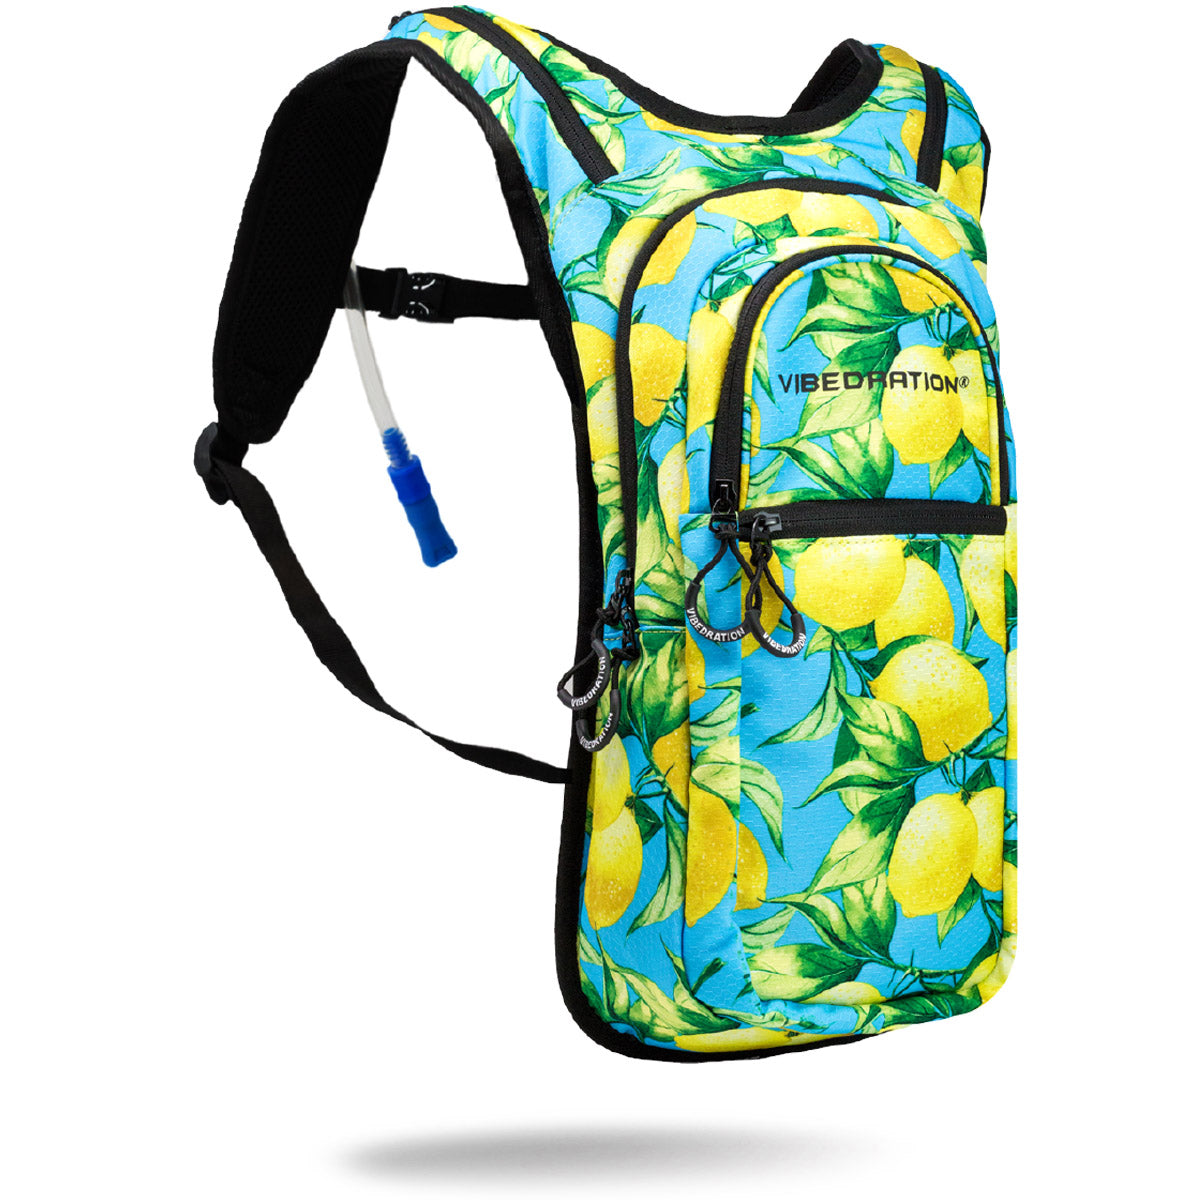 2 Liter Blue hydration pack with Lemons